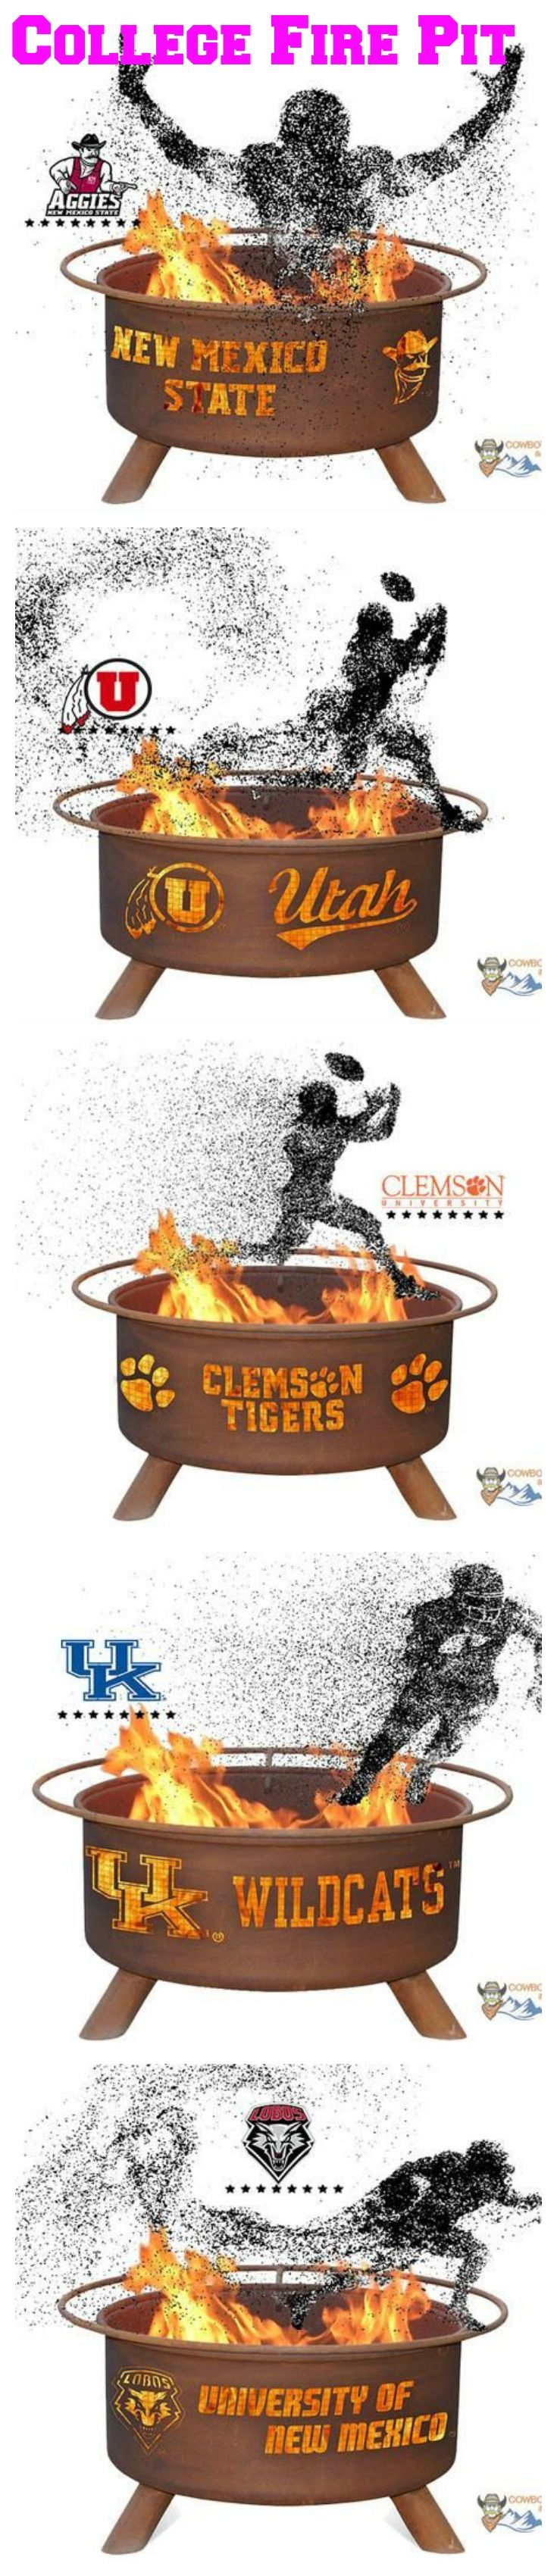 College Fire Pit Tailgate Show Your Pride and Entertain your Friends with the Wake Forest University Fire Pit! – College Fire Pit